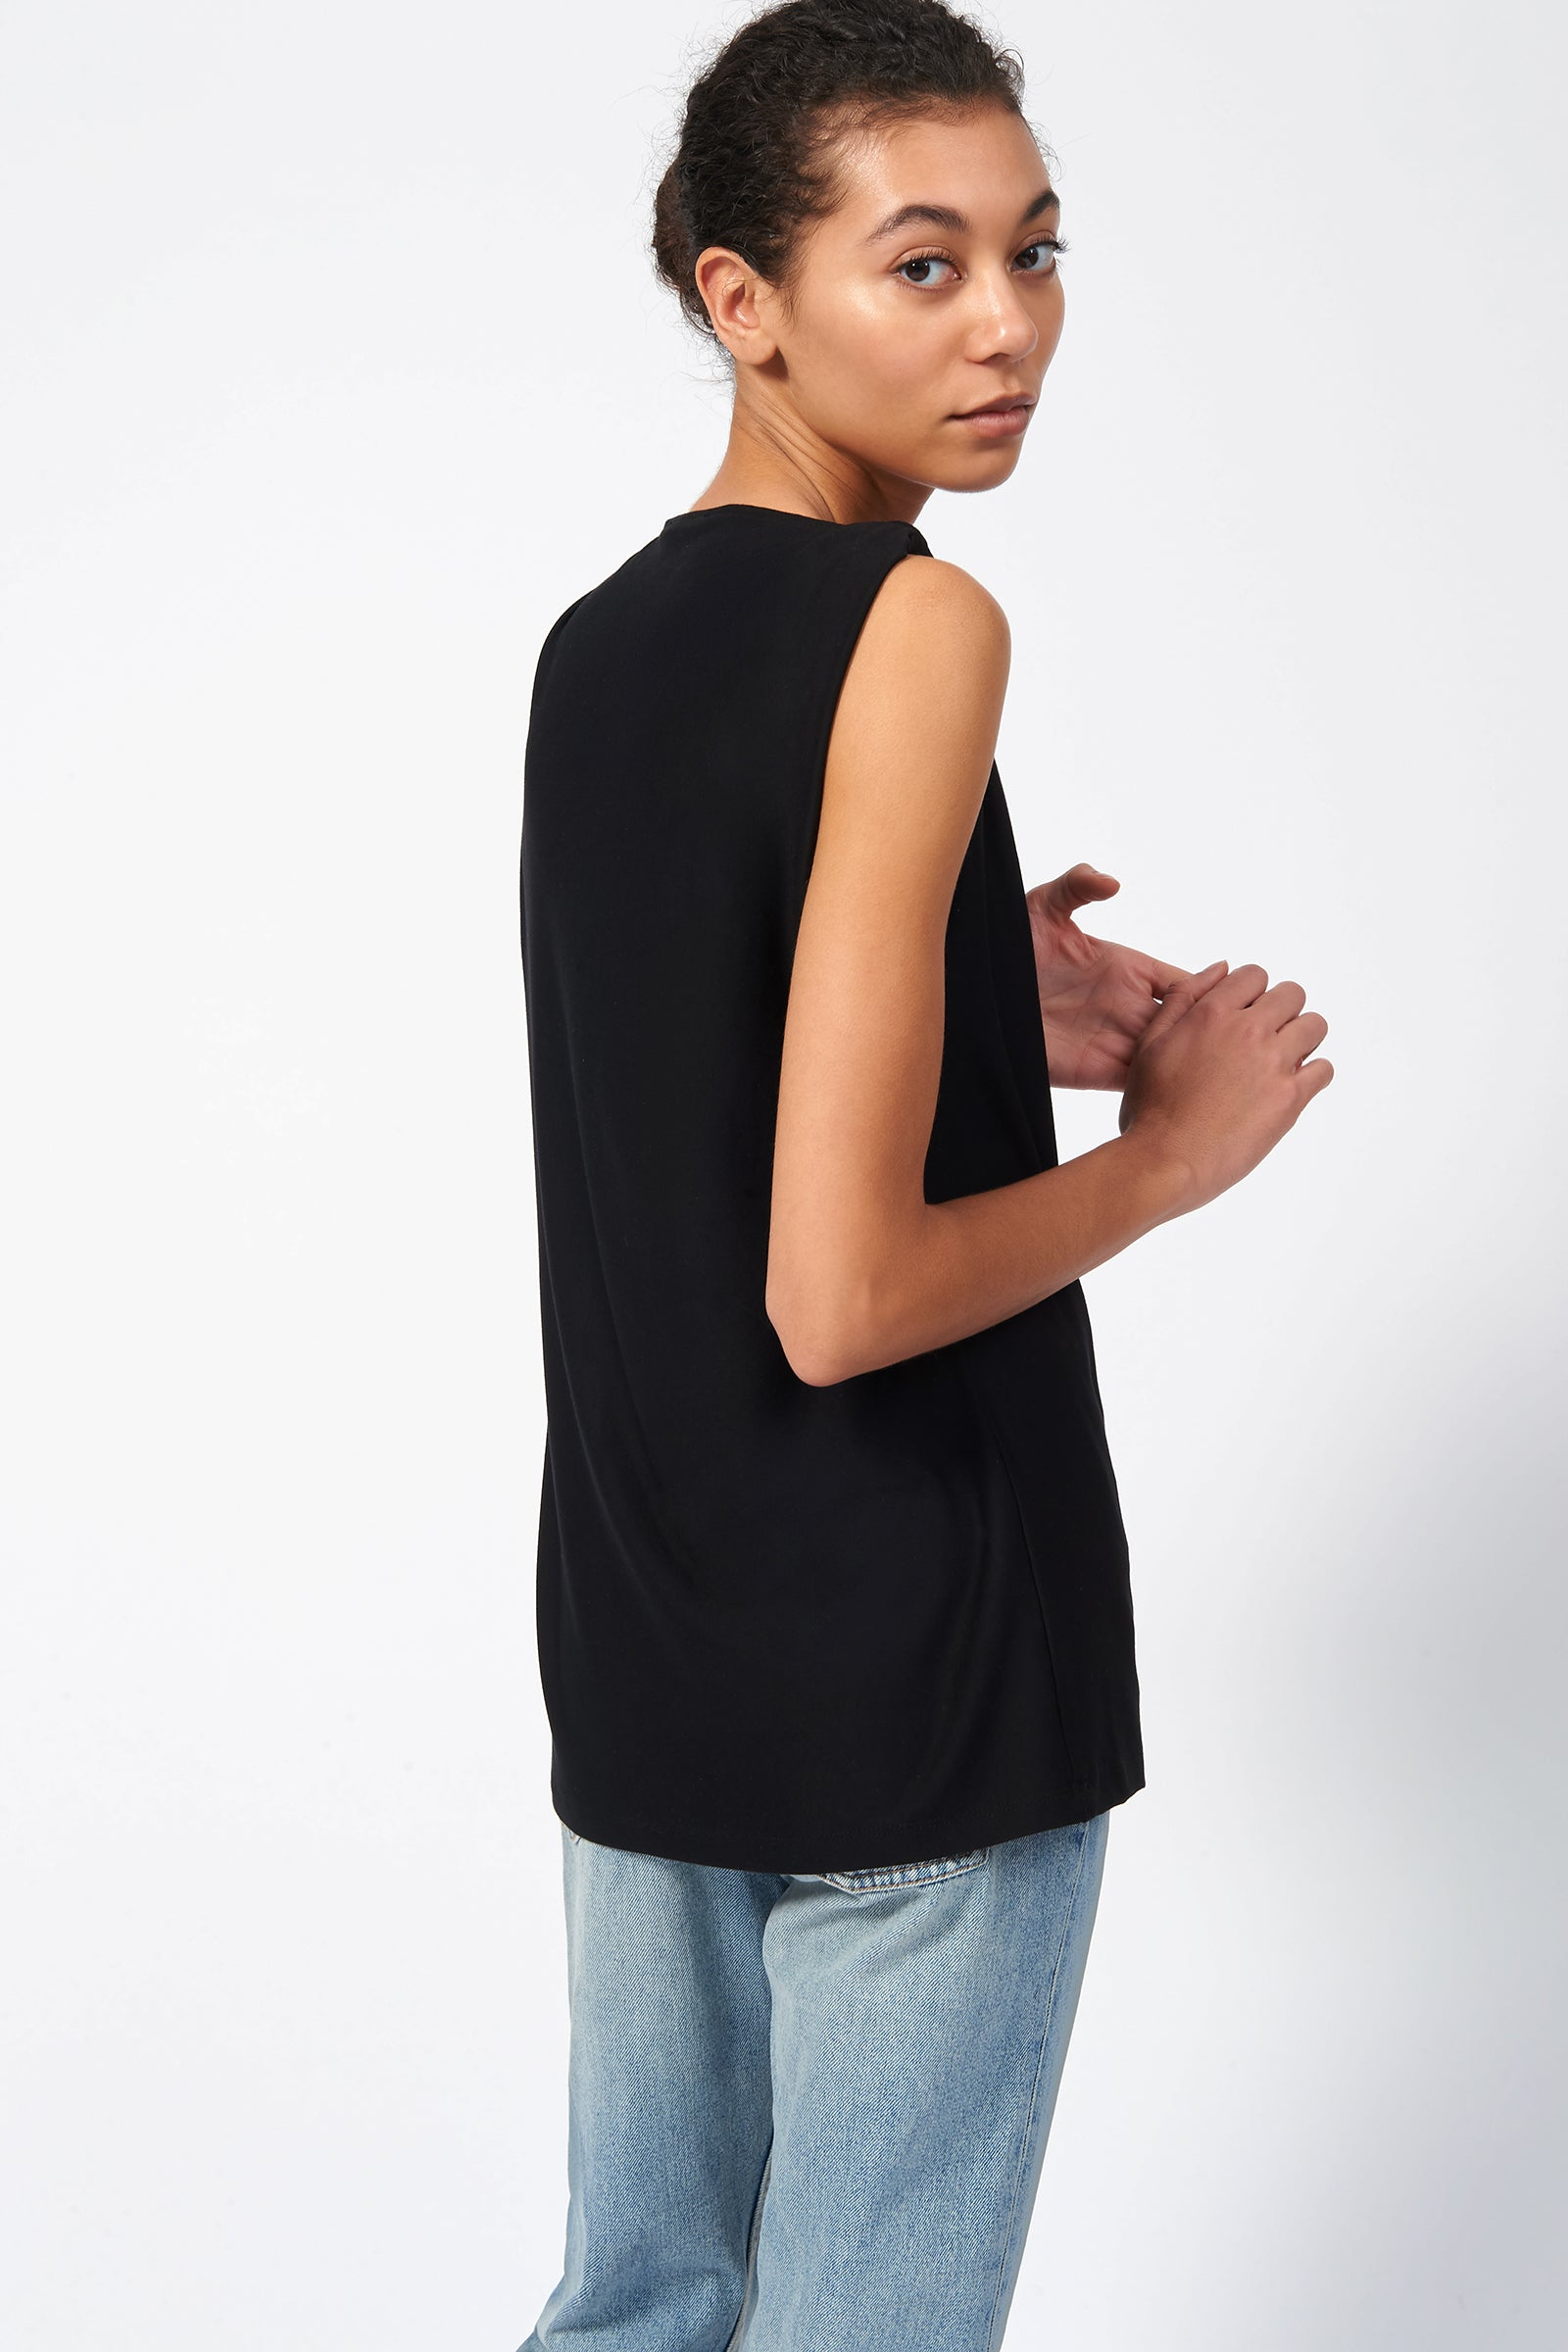 Kal Rieman Knot Shoulder Tee in Black on Model Back View